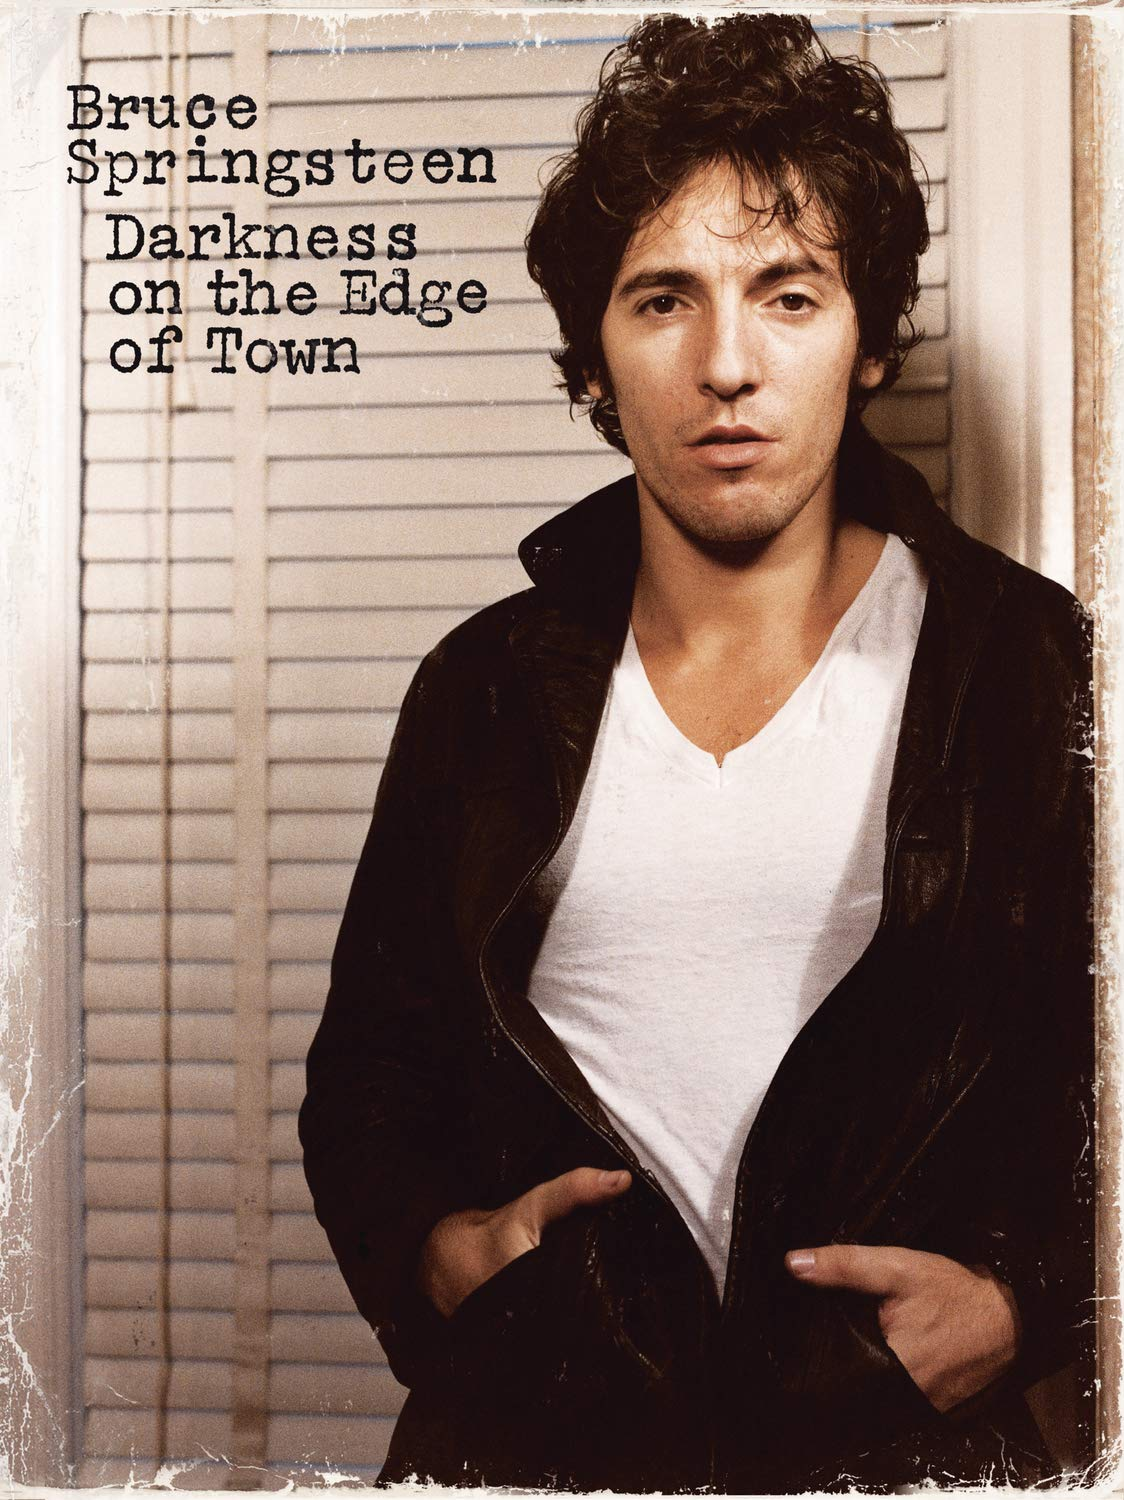 The Promise: The Darkness On The Edge Of Town Story (3 CD/3 DVD) by Springsteen, Bruce